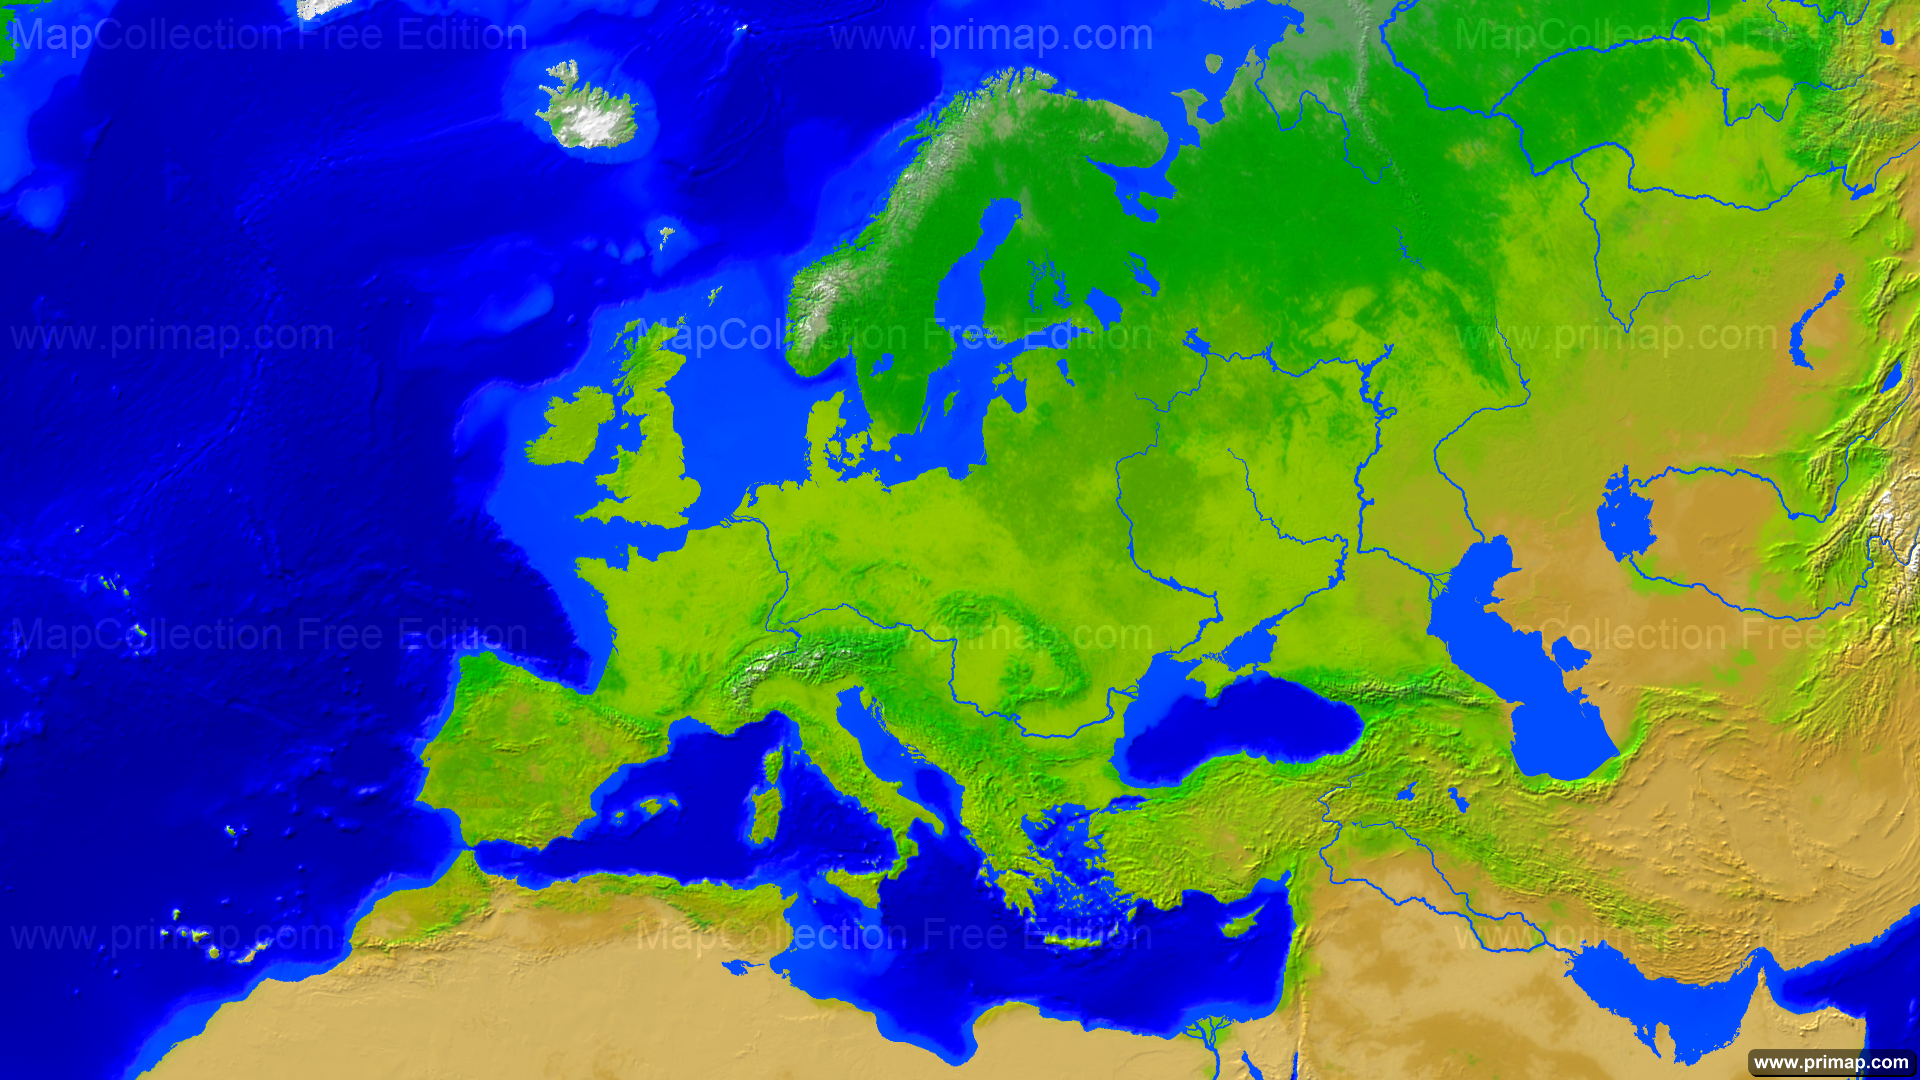 Green Map Of Europe.Primap Continental Maps